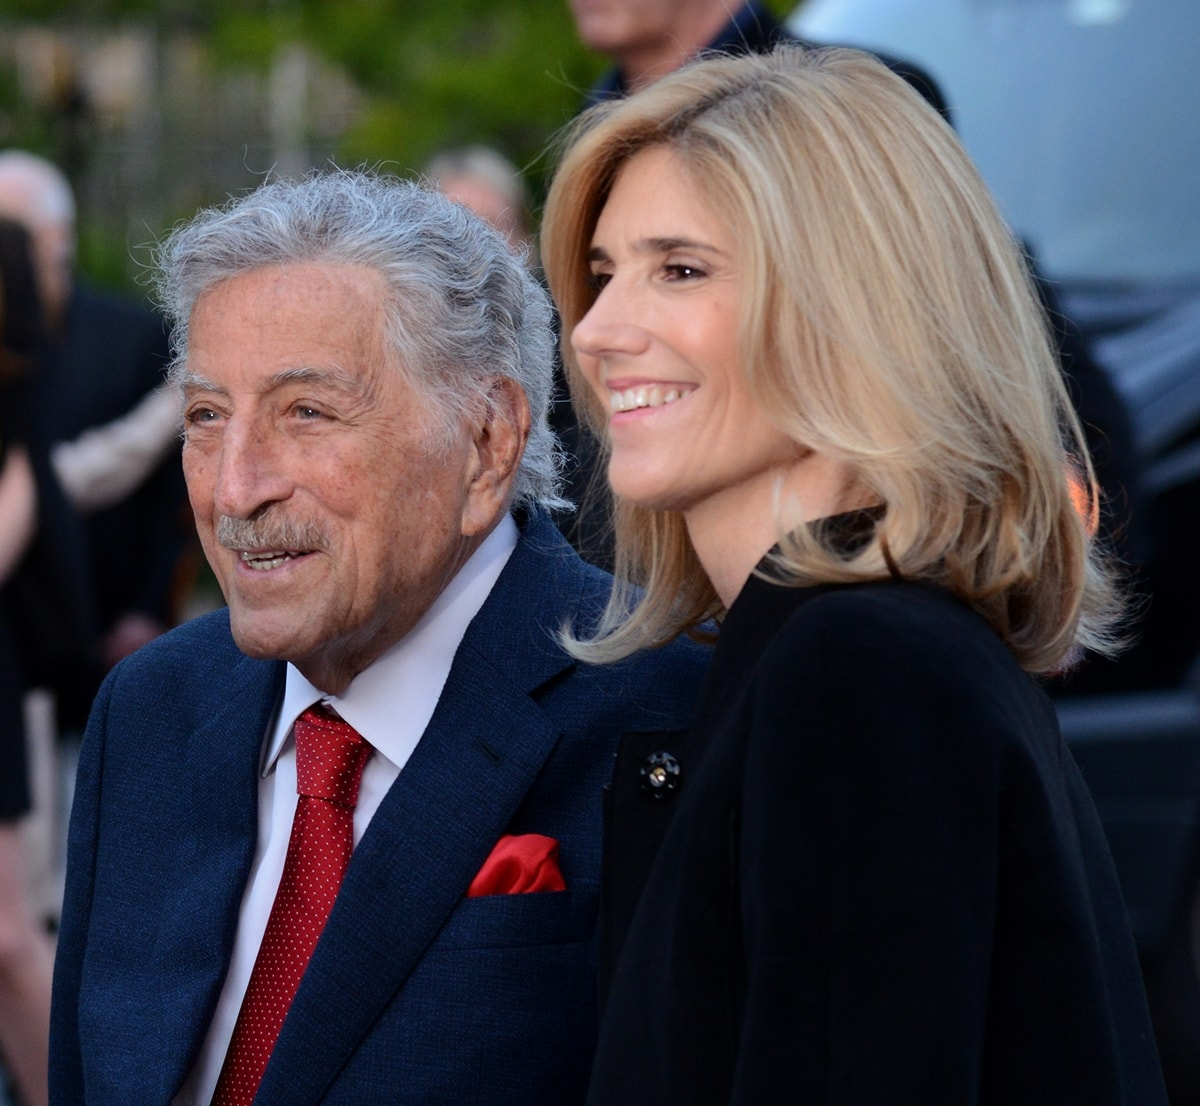 Tony Bennett is 40 years older than his wife Susan Benedetto (née Crow)